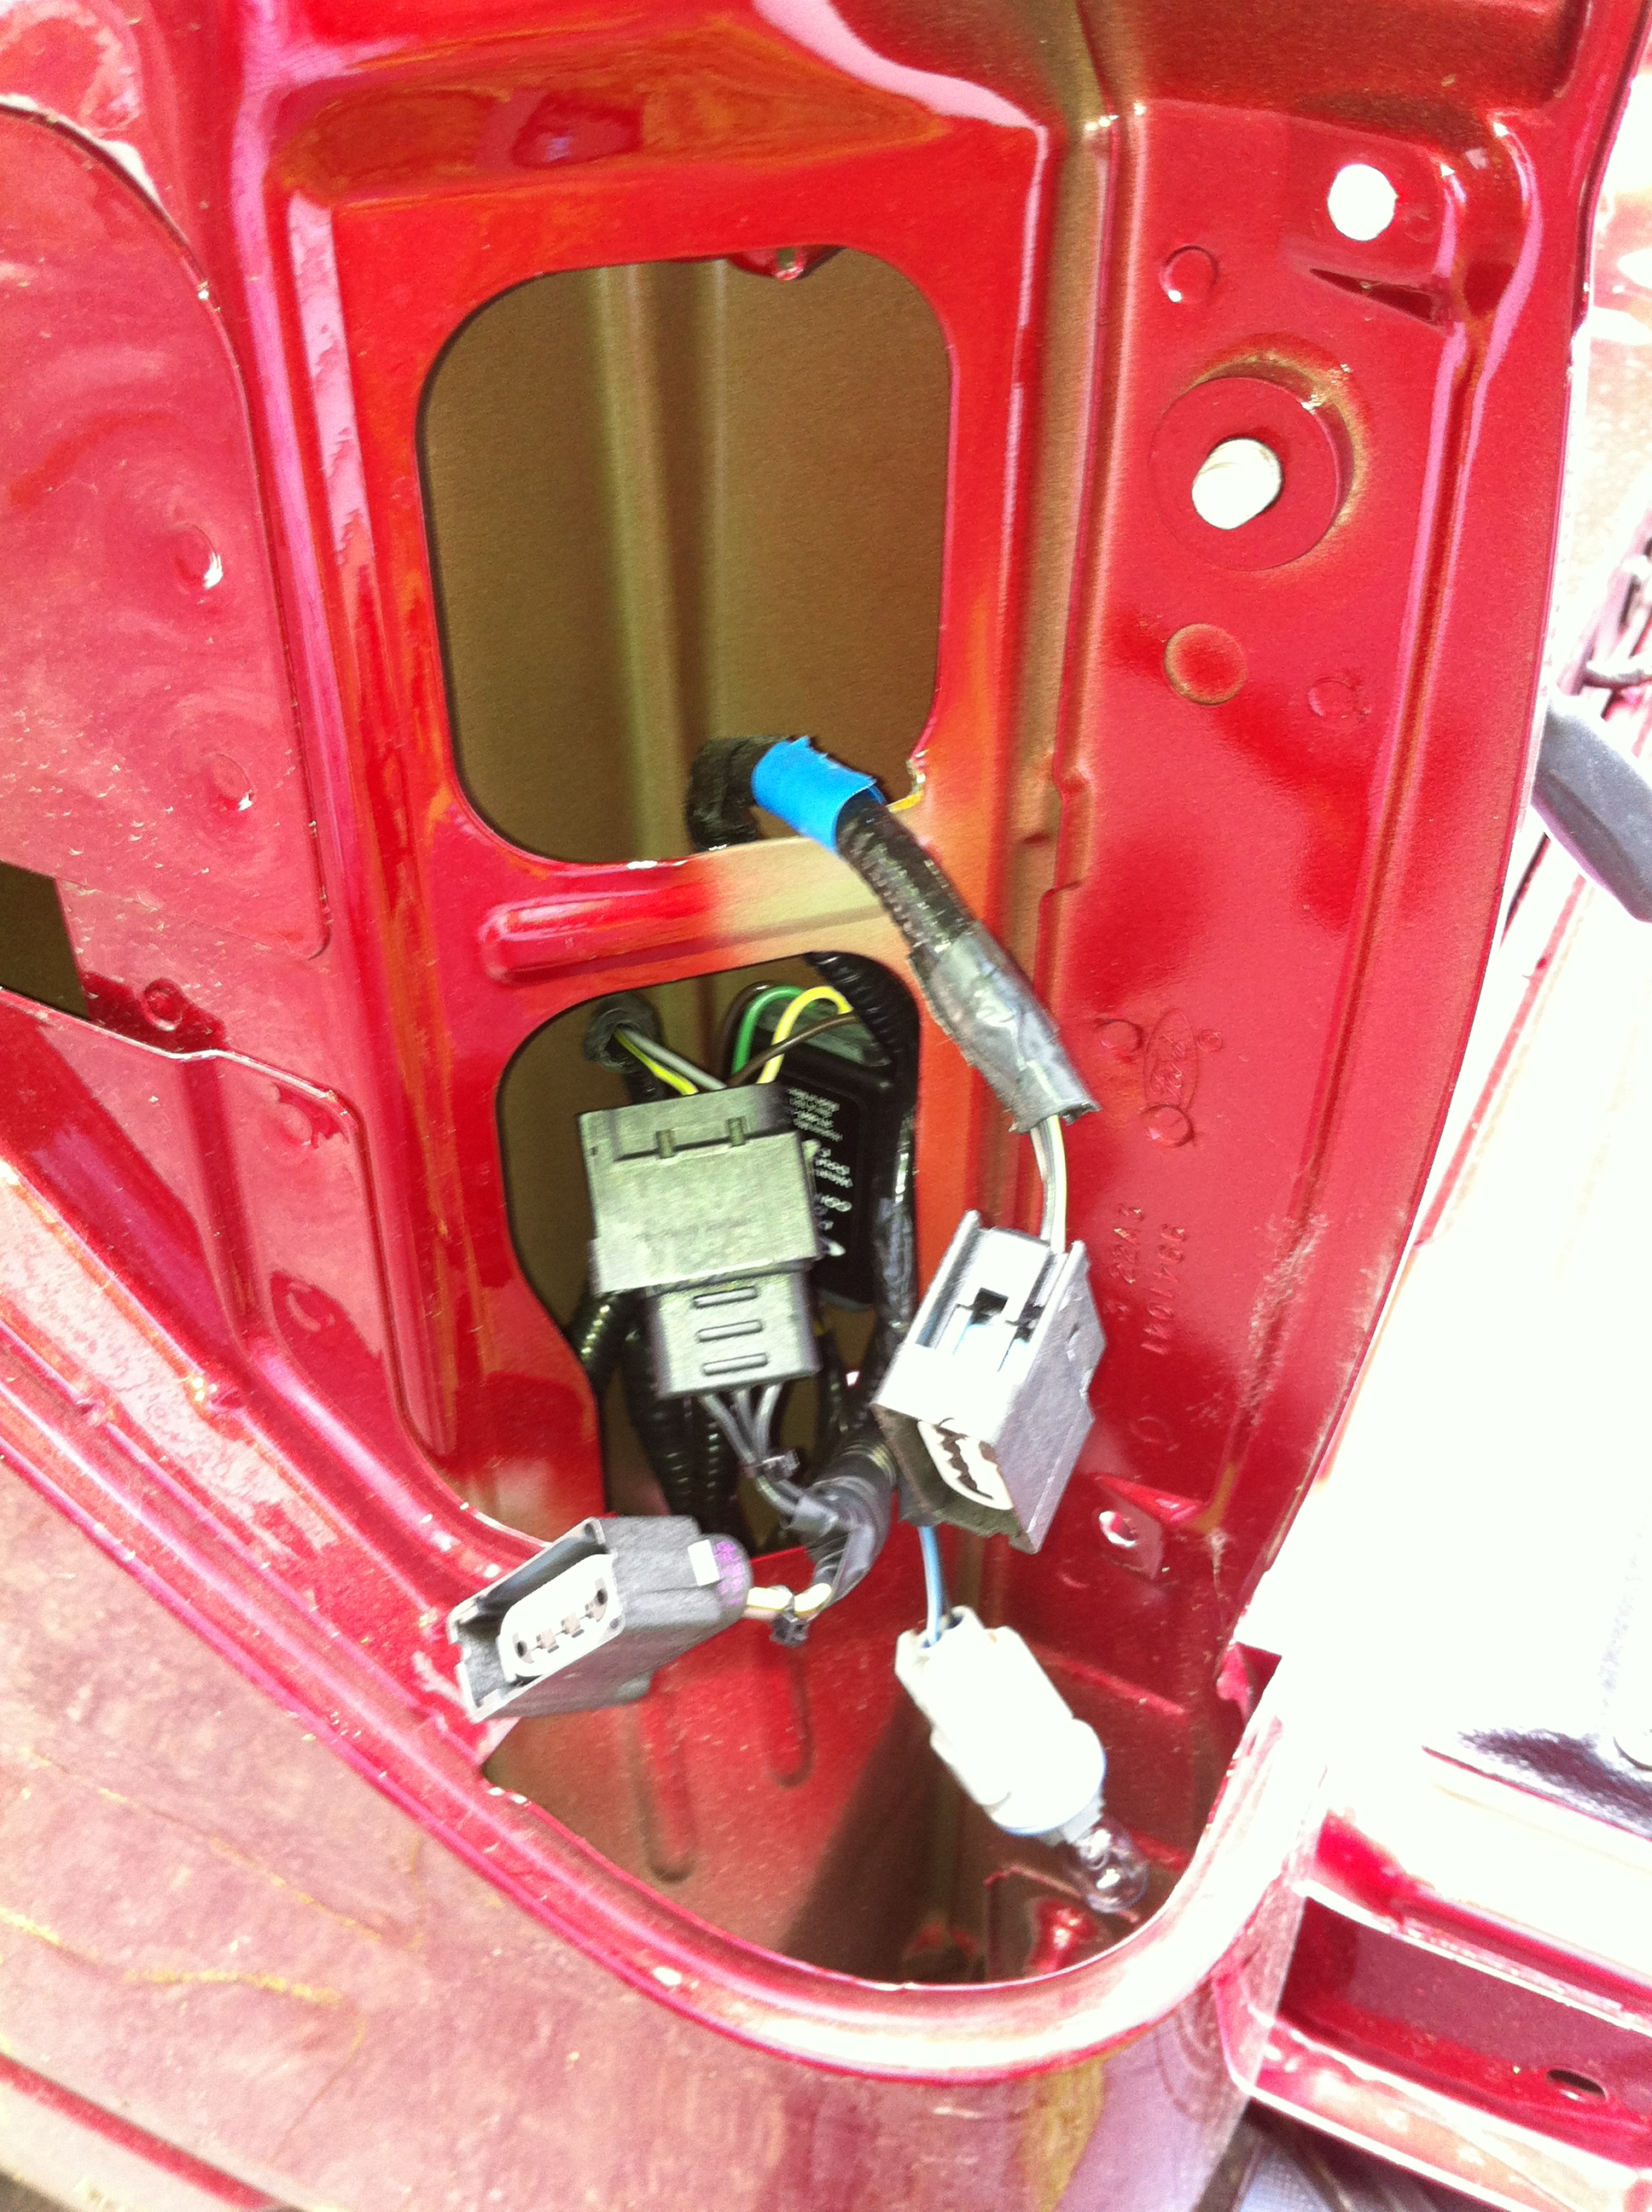 2011 Ford F 150 Wiring Auto Electrical Diagram 2013 Power Mirror F150 Right Rear Taillight Is Out Where Fuse And